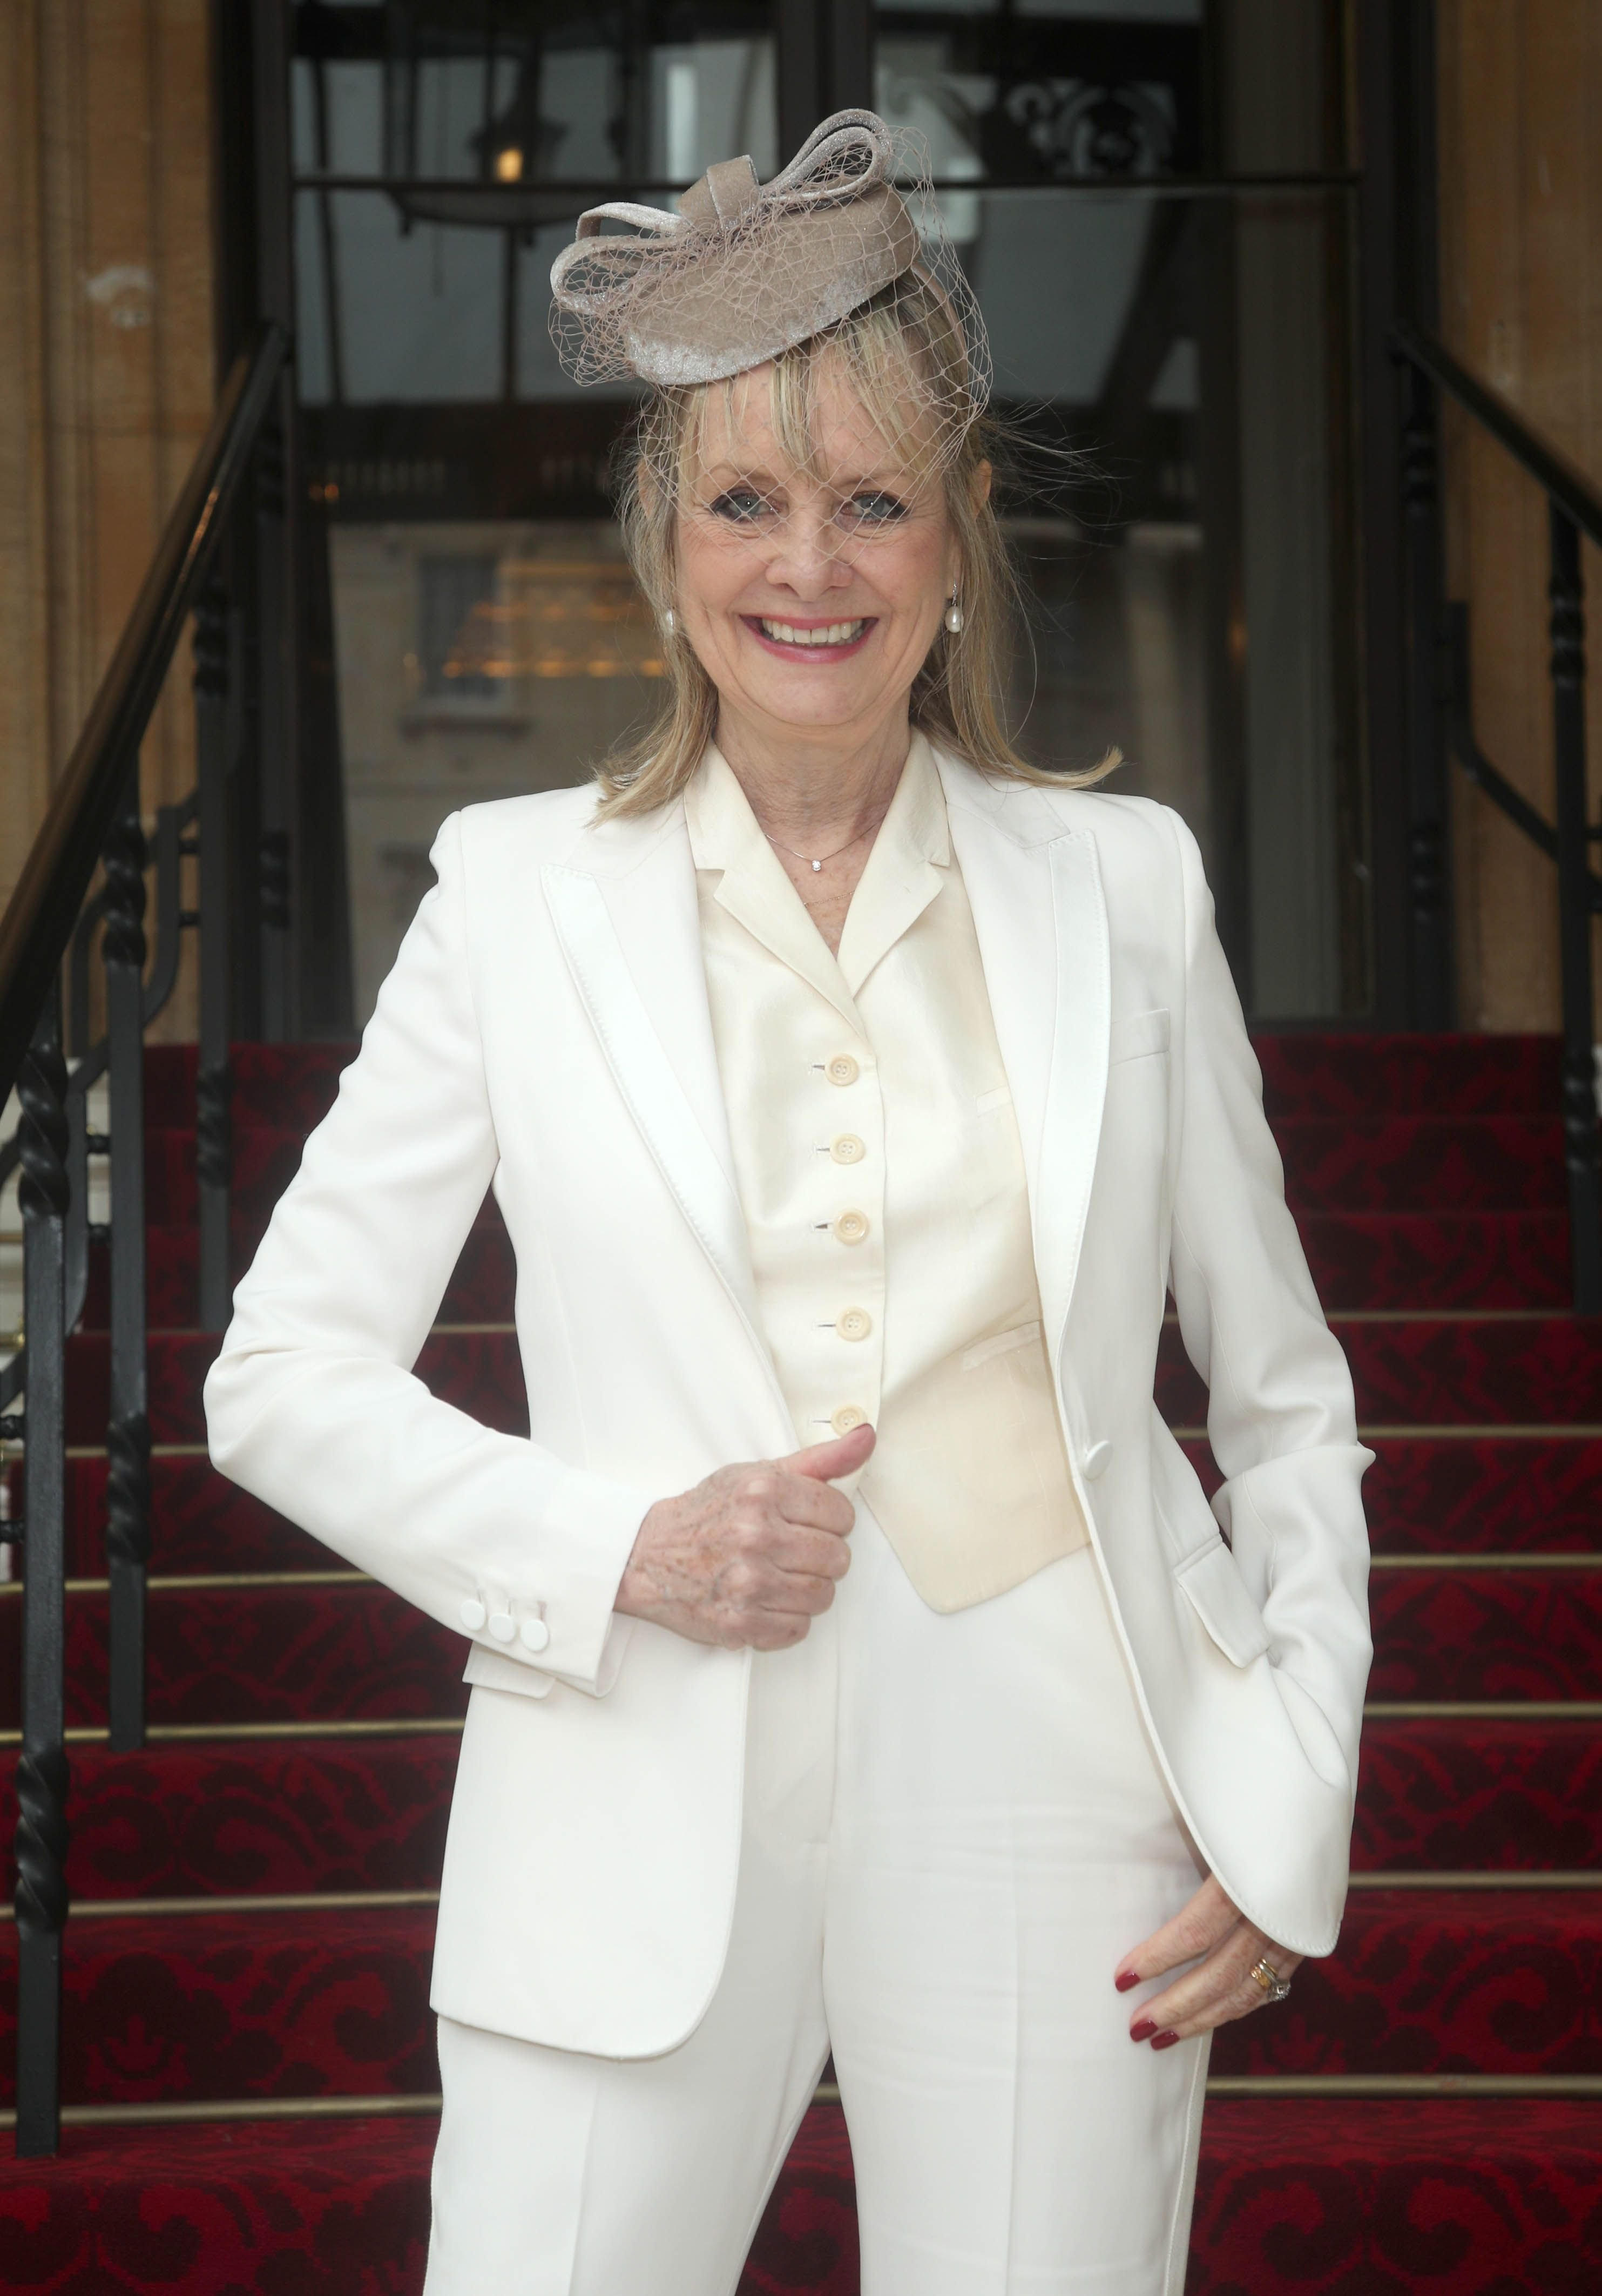 """Lesley """"Twiggy"""" Lawson arrives at Buckingham Palace where she will be made a Dame Commander of the Order of the British Empire for services to fashion, the arts and charity, during an Investiture ceremony conducted by the Prince of Wales on March 14, 2019 in London, England.   Source: Getty Images"""